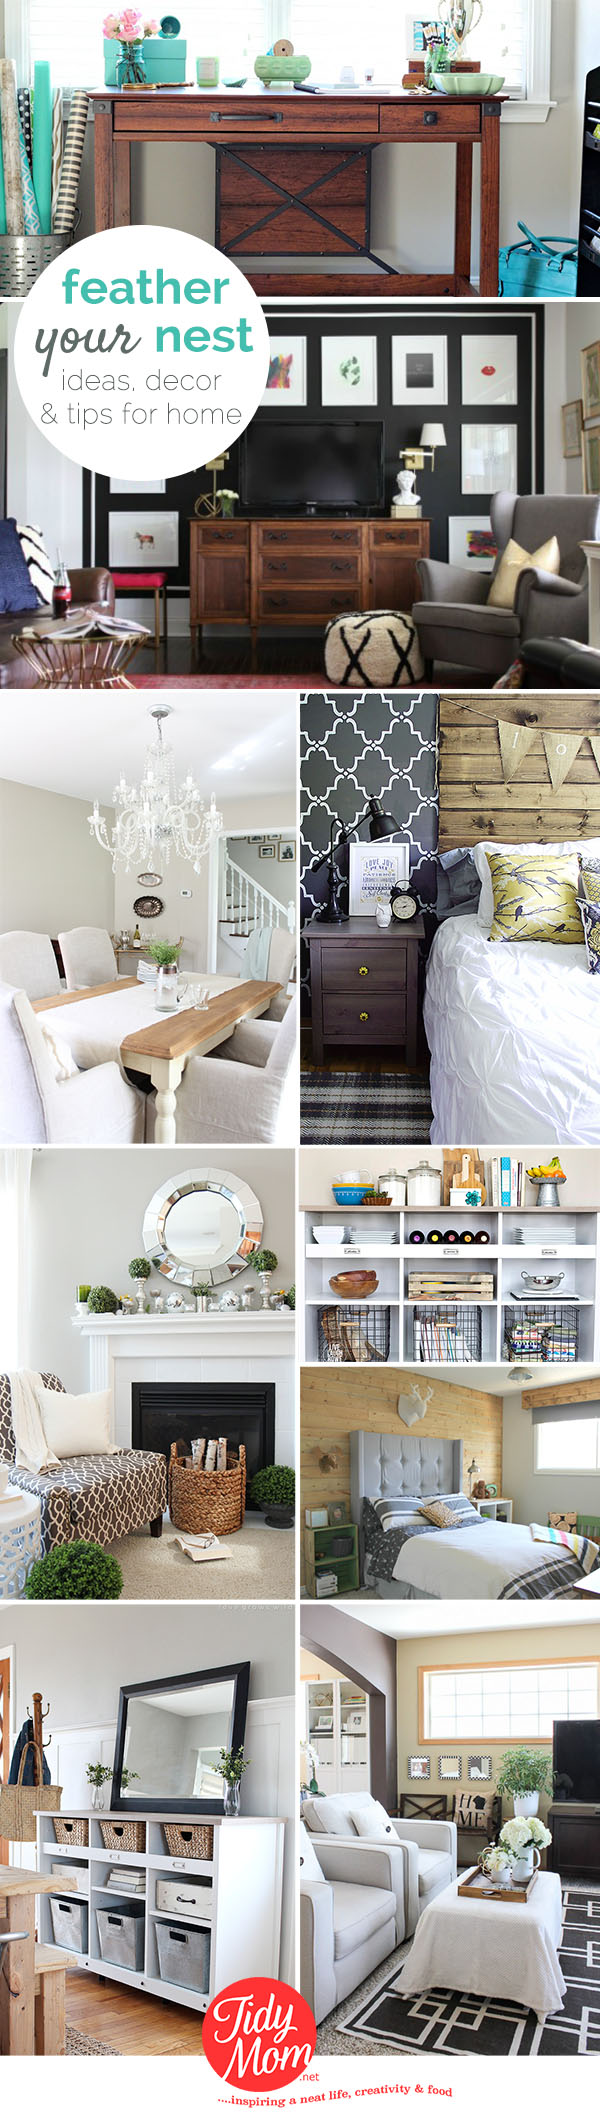 Feather Your Nest: Ideas, decor and tips for your home at TidyMom.net